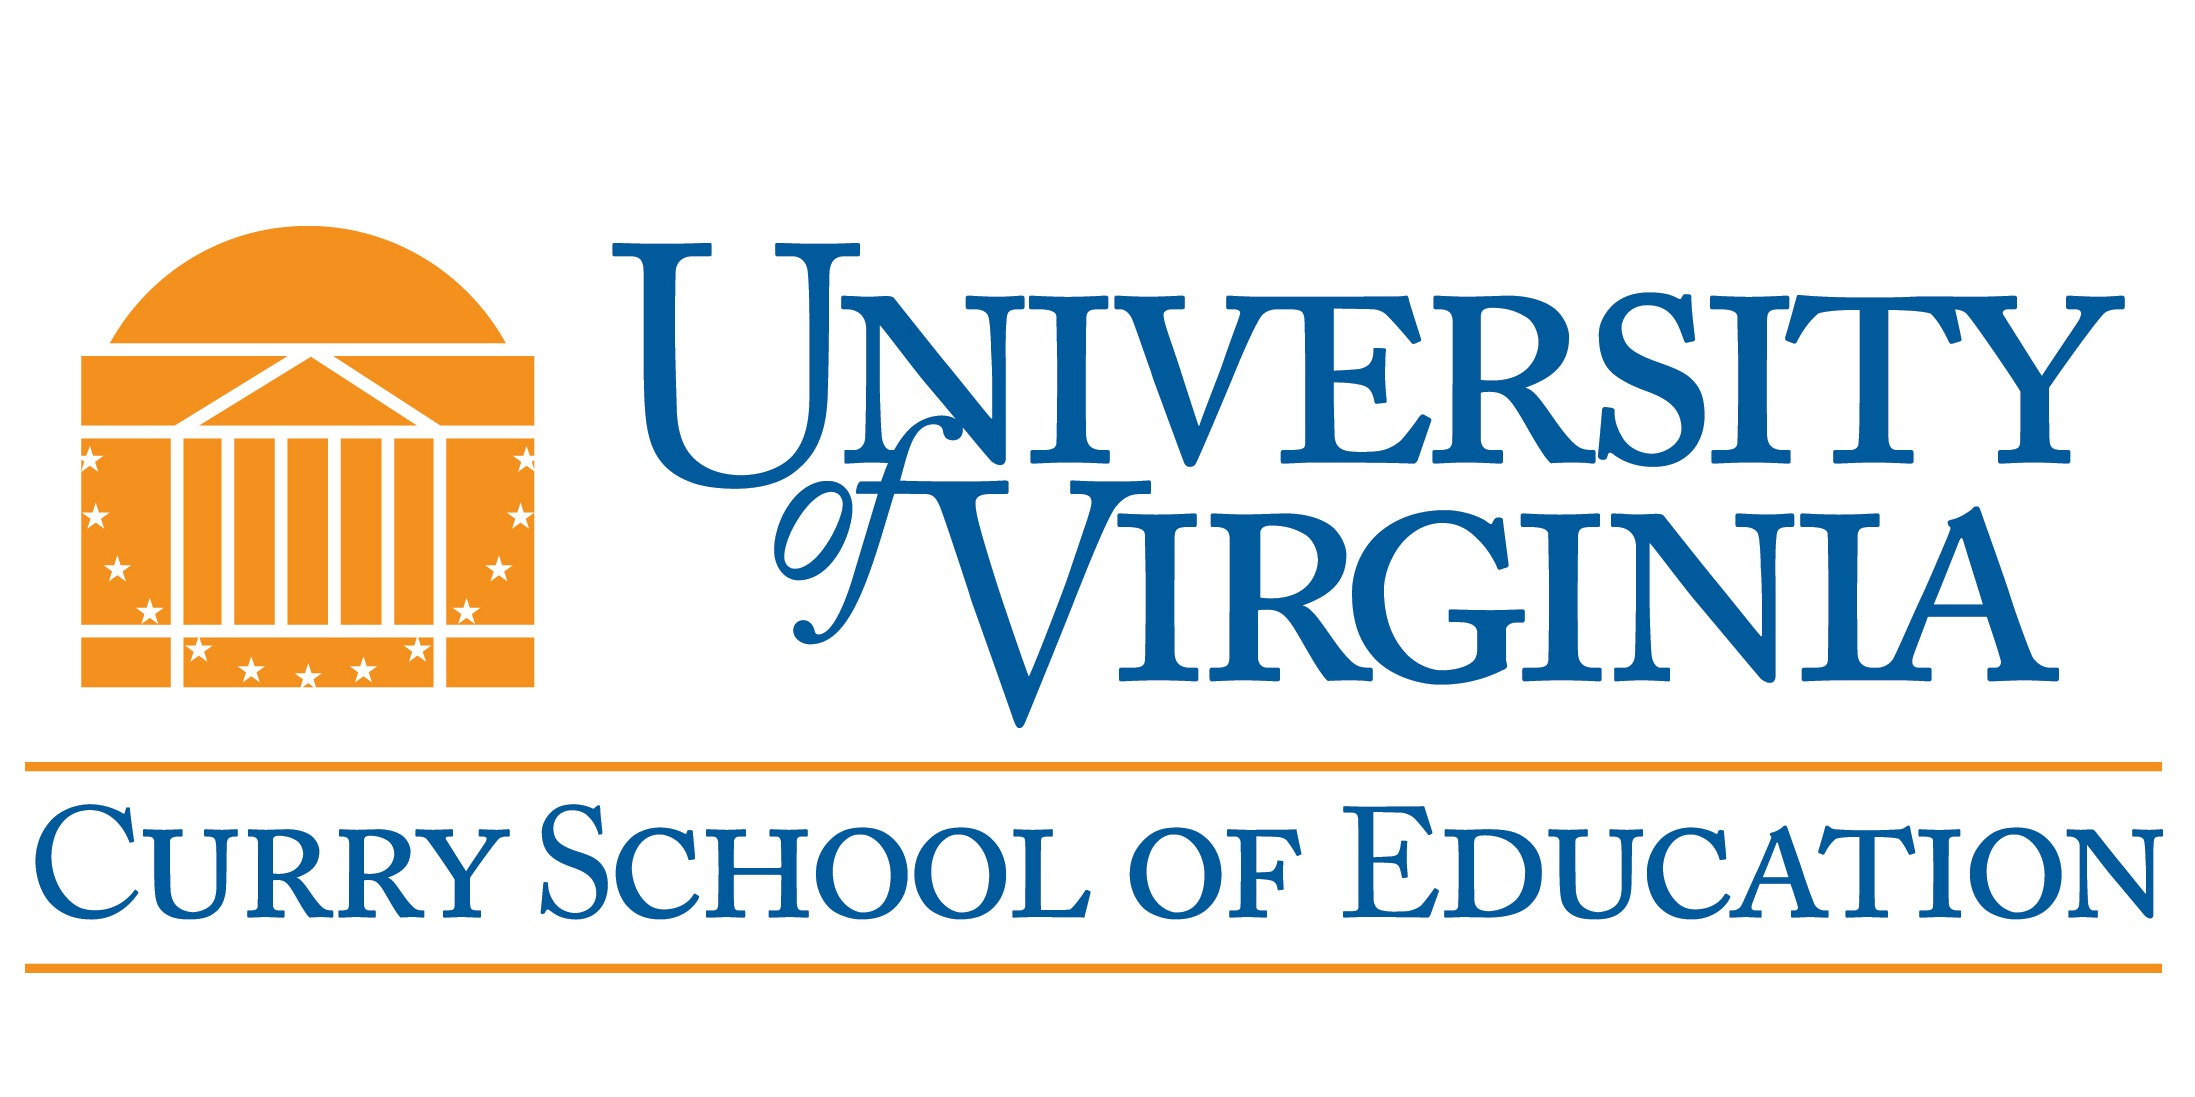 uva-curry-school-of-education-1.jpg